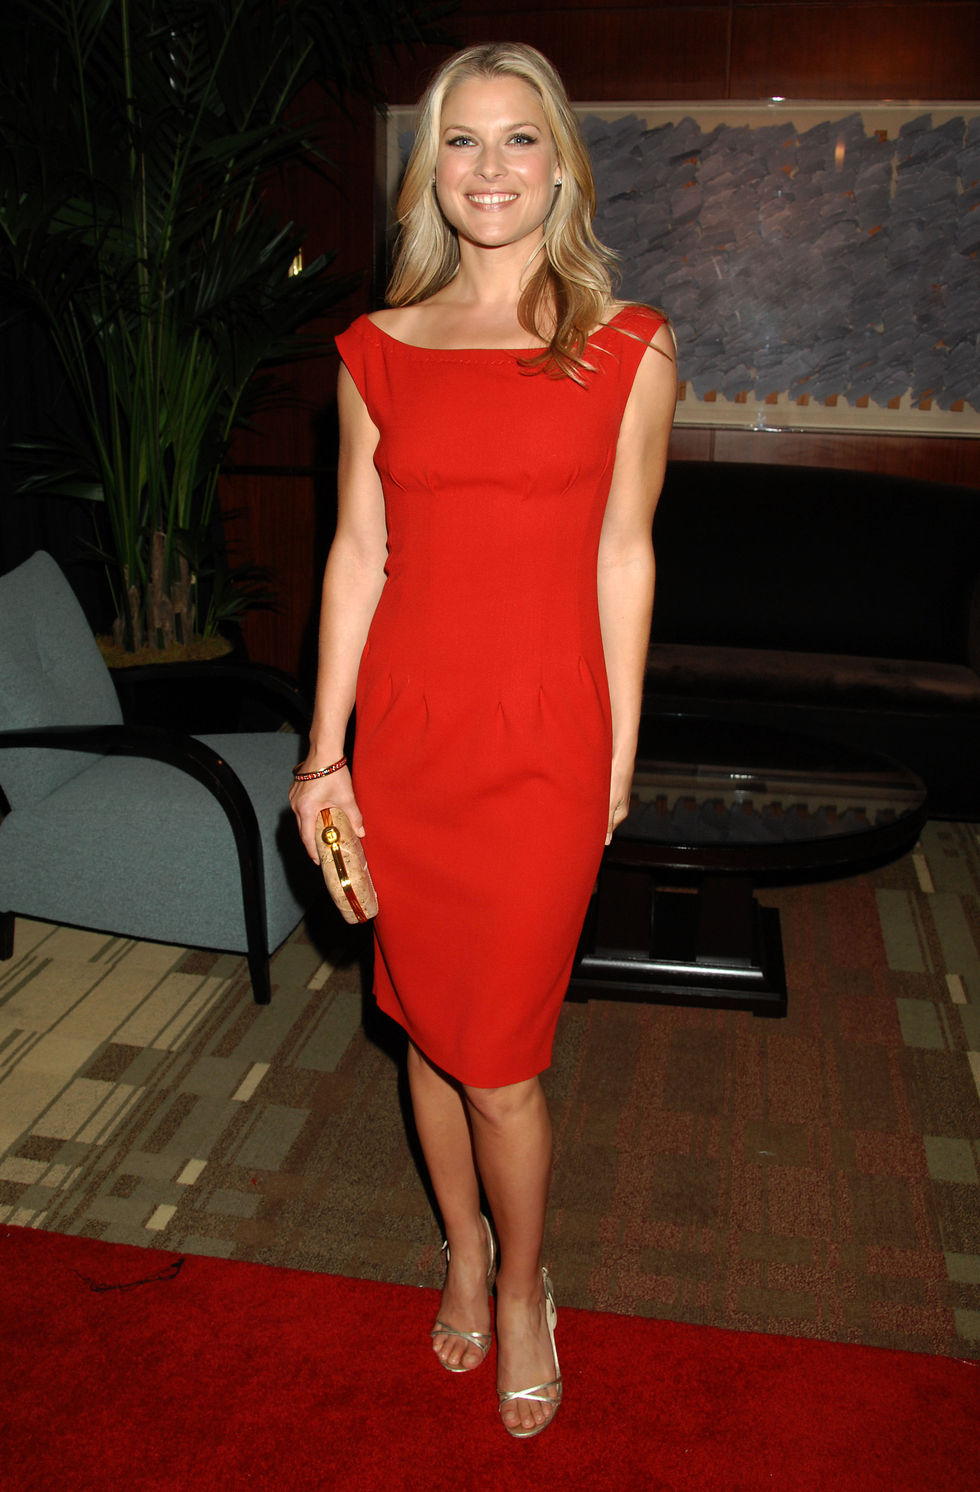 ali-larter-nbc-universal-2008-press-tour-all-star-party-in-beverly-hills-01